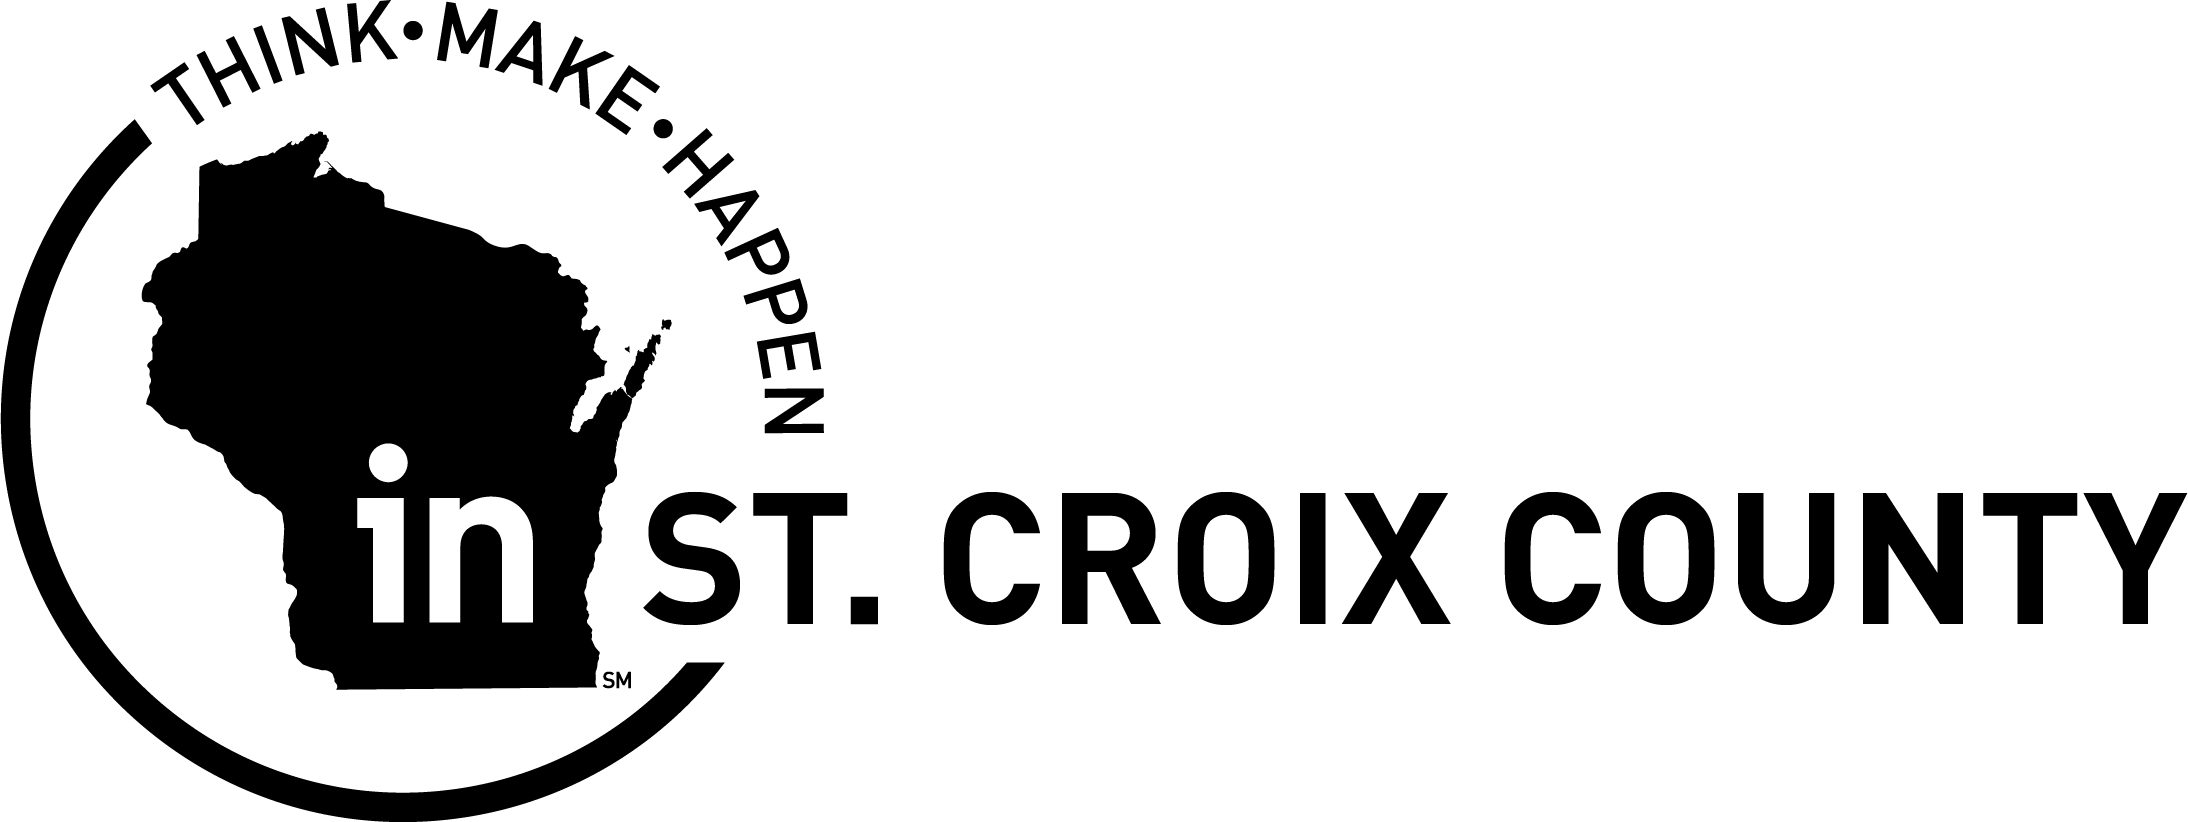 think make happen st. croix